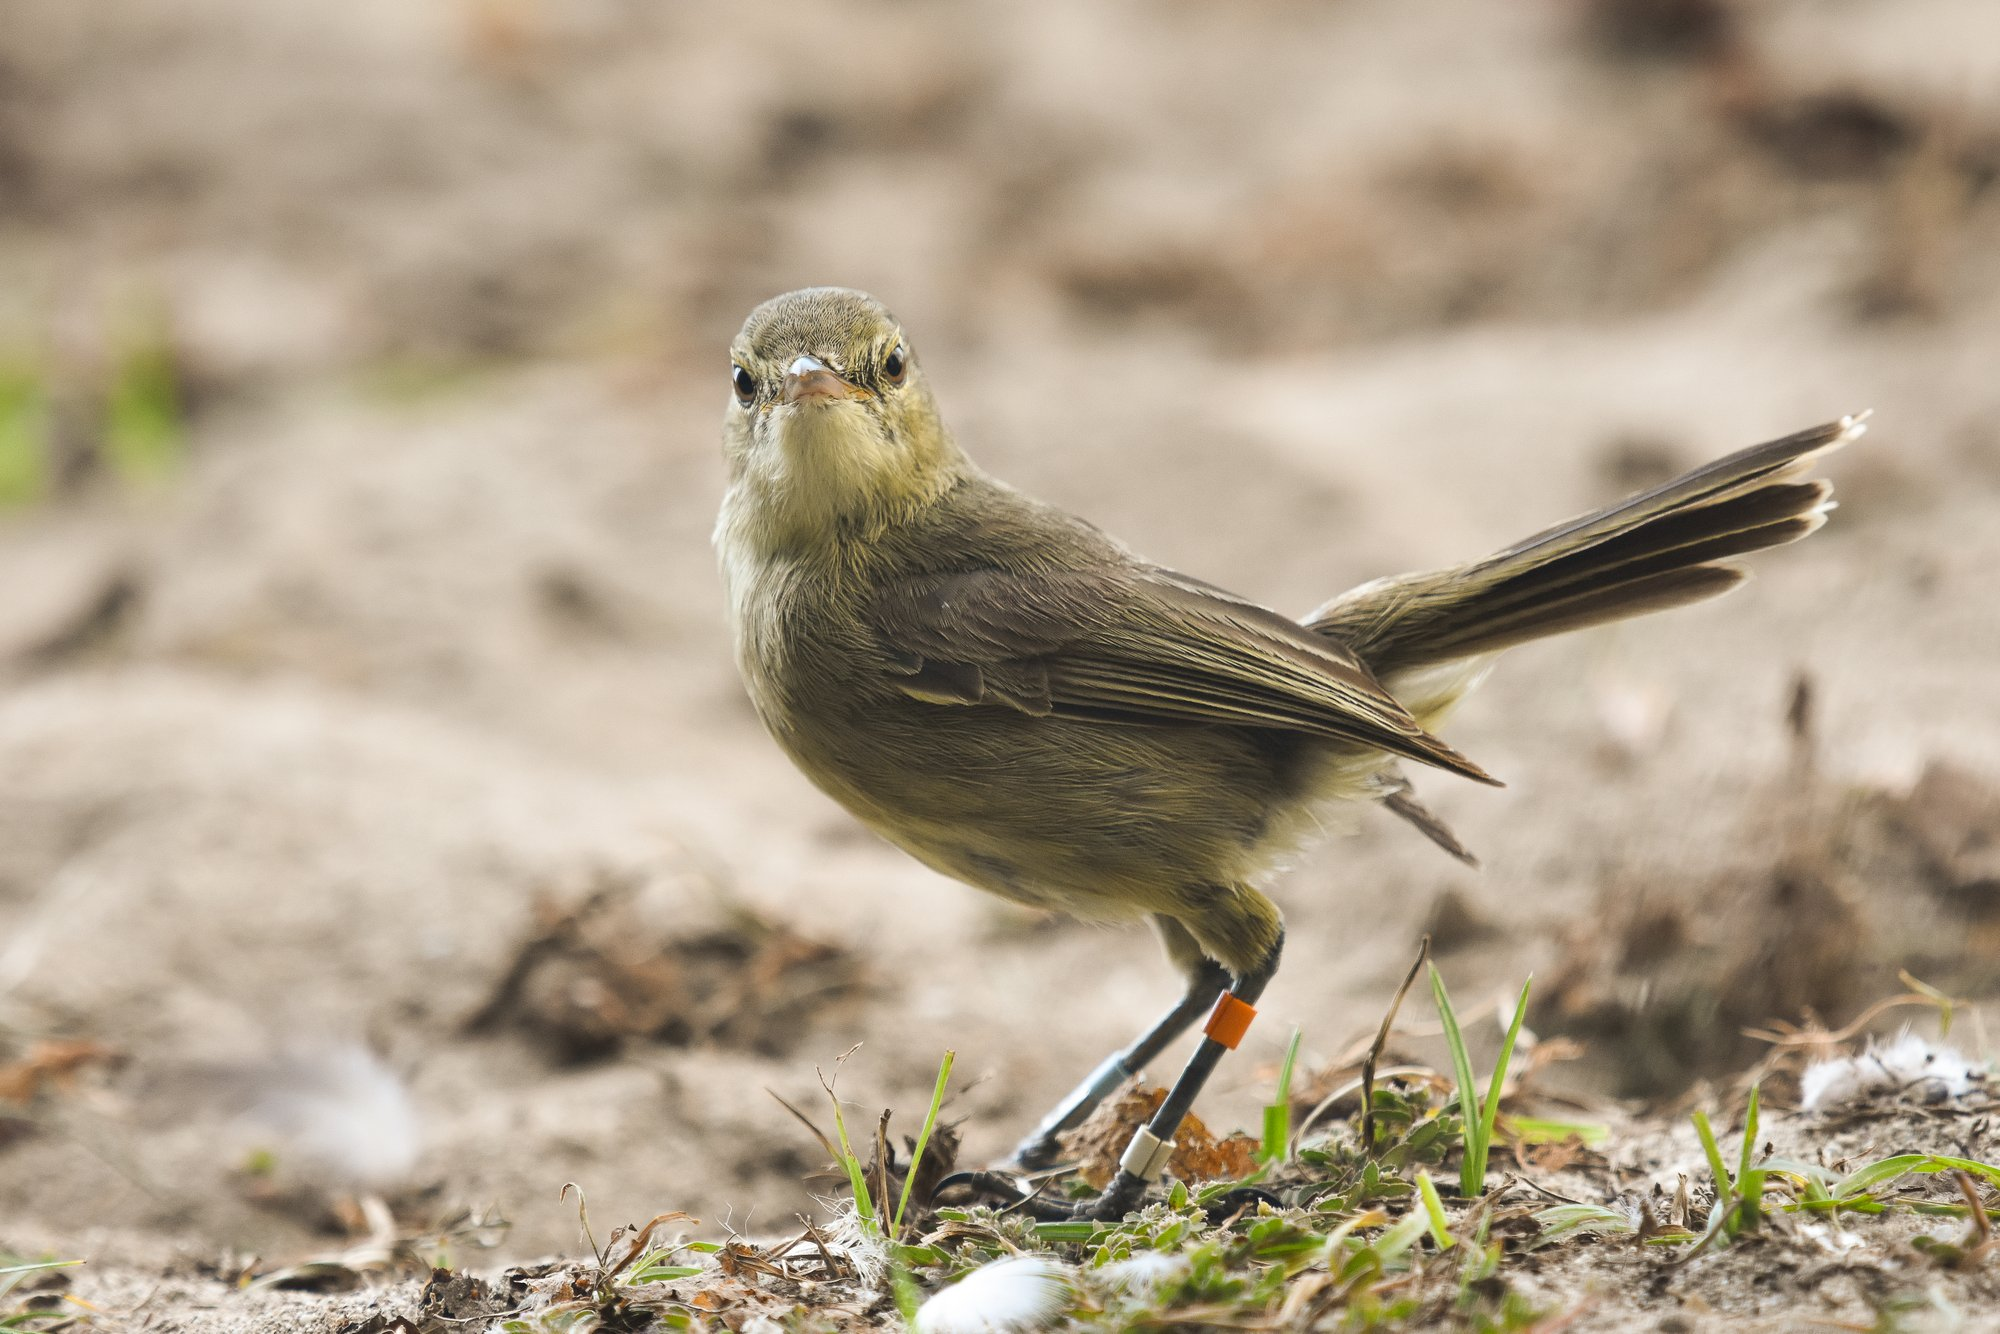 Female birds that receive help with parental care age more slowly